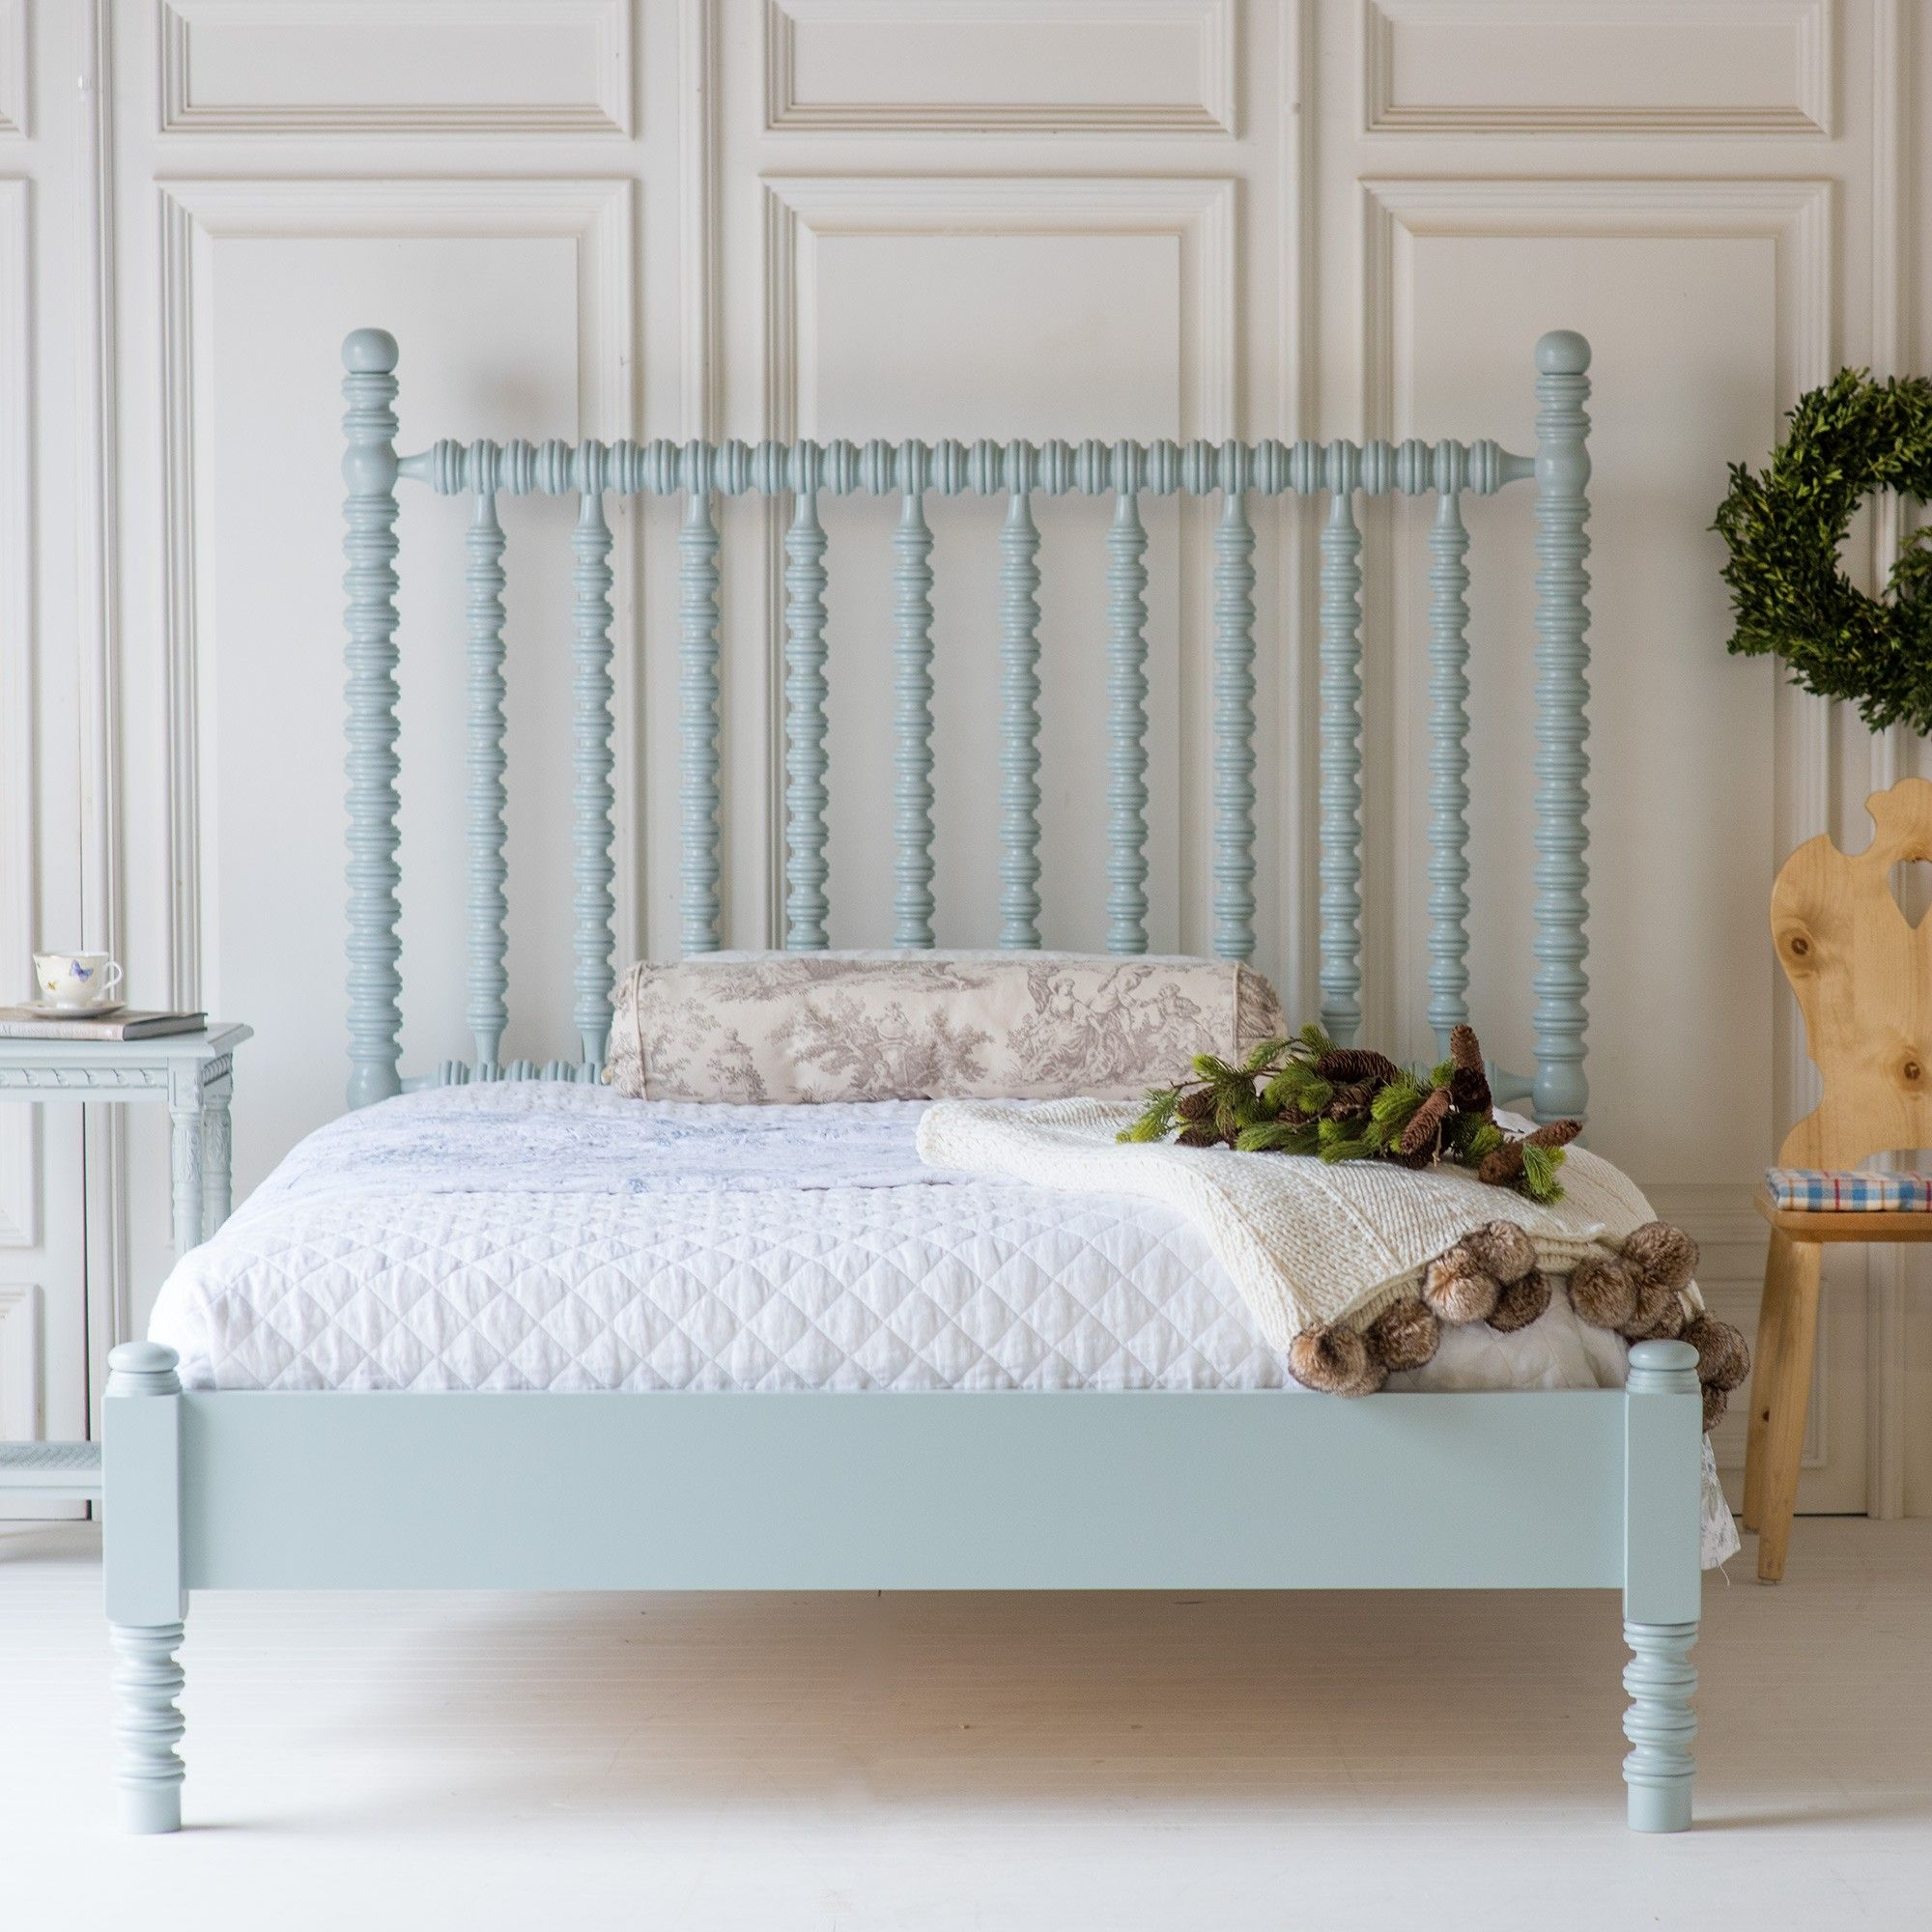 Our Harriet Spindle Bed With Low Footboard From The Beautiful Bed Company Is A Real Statement Piece With Intricatel Spindle Bed Beautiful Bedding Painted Beds